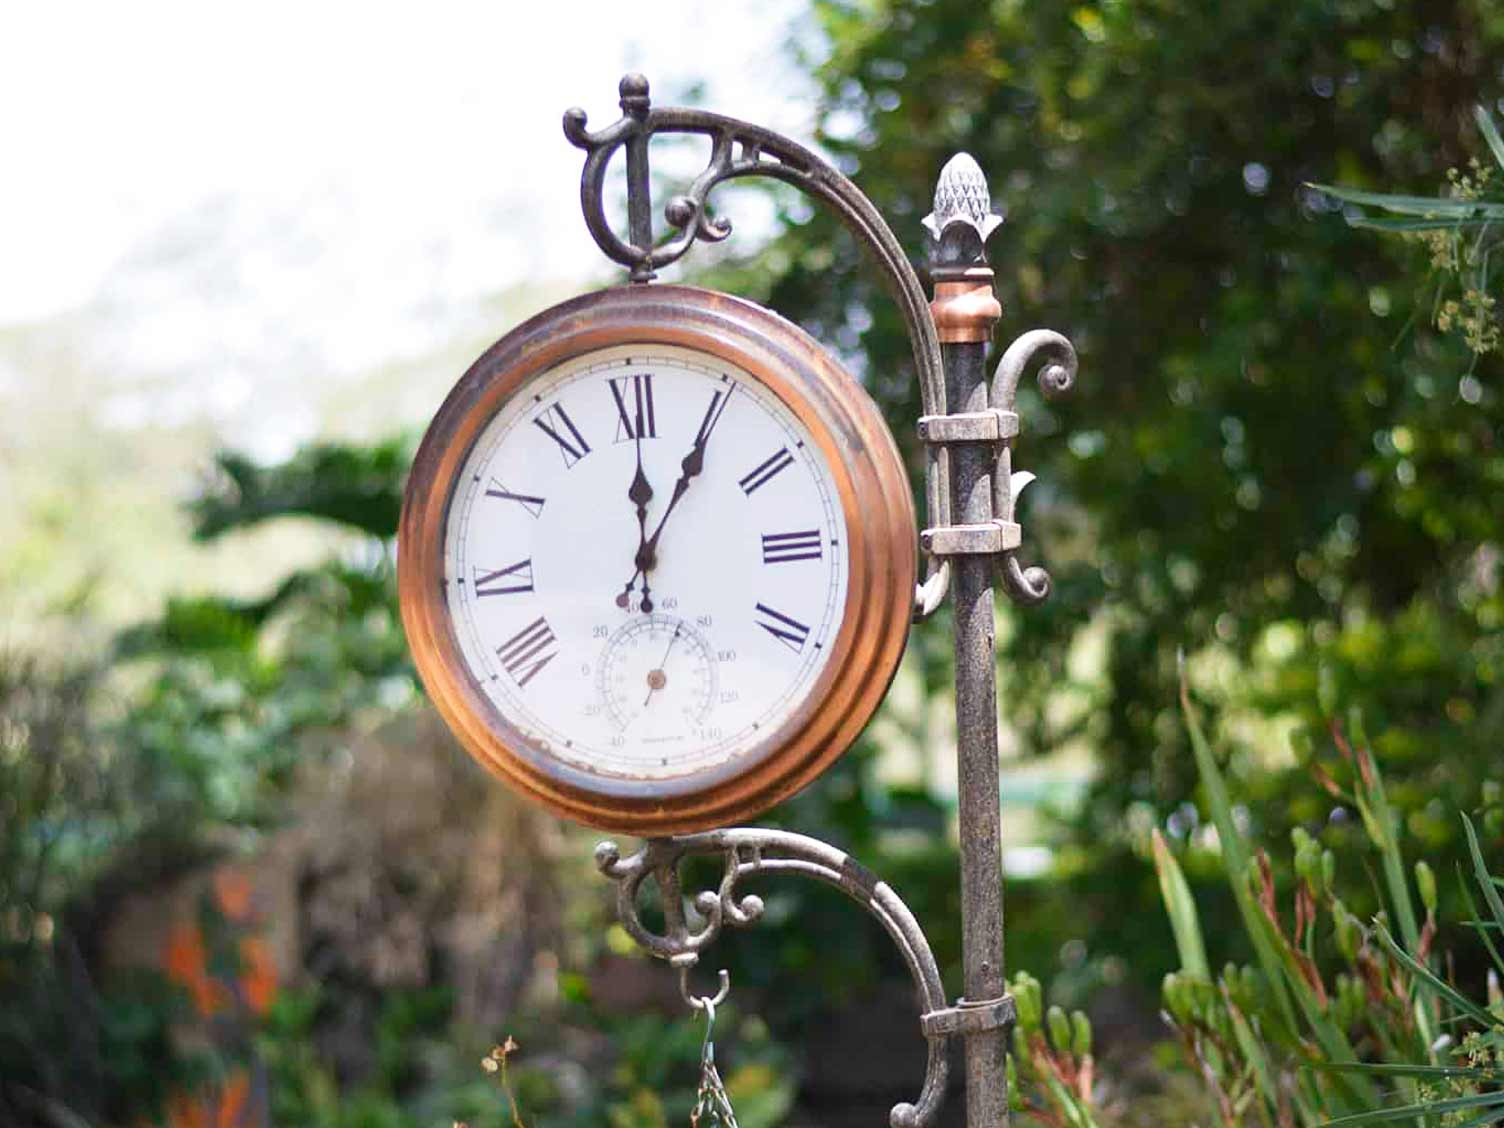 Garden clock with thermometer